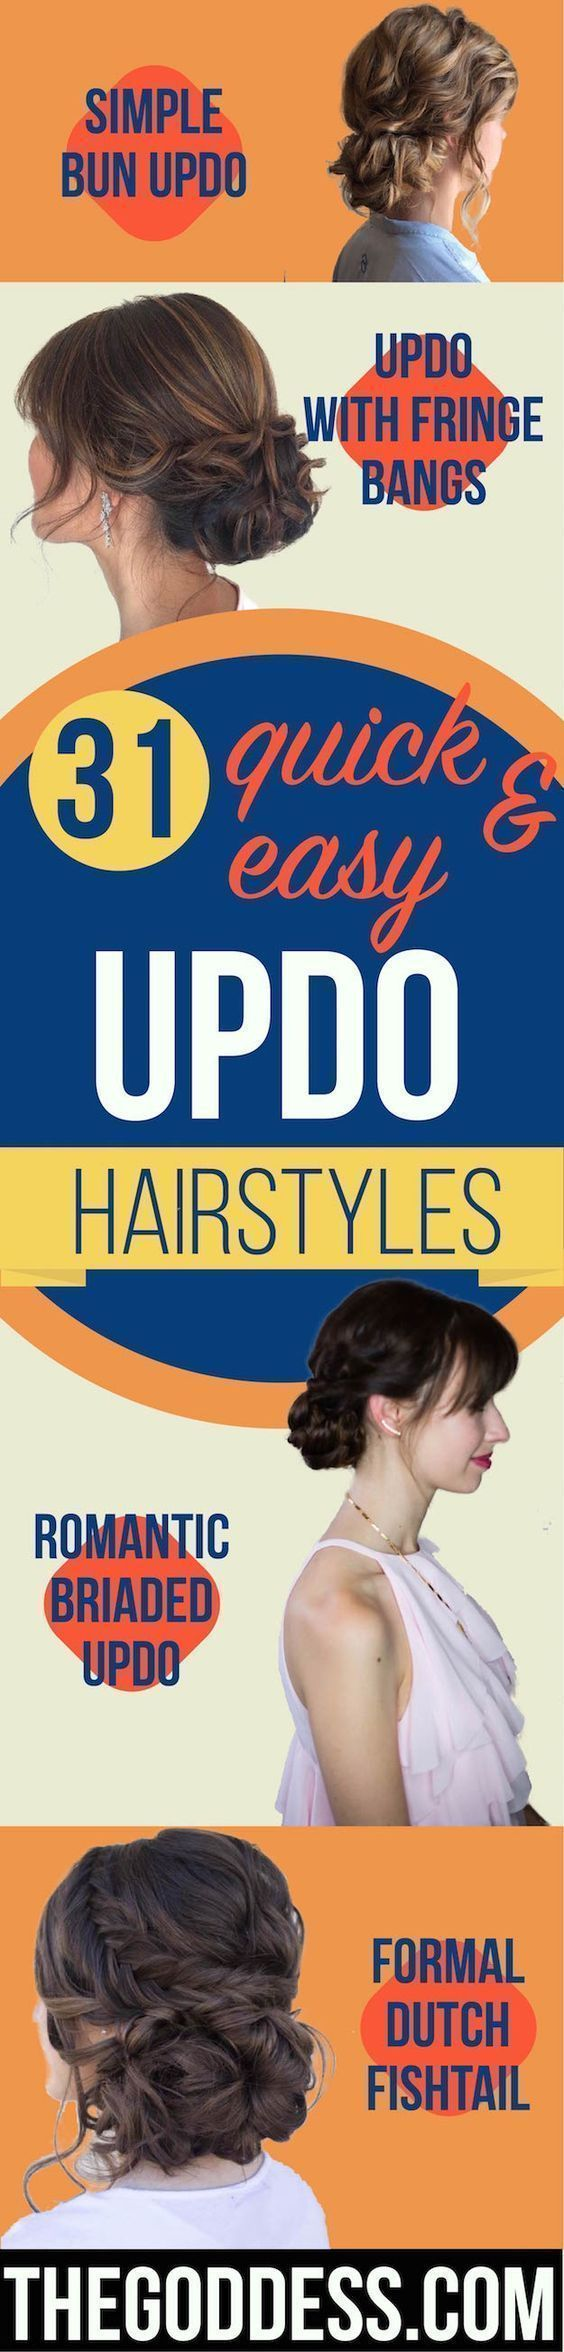 Quick and Easy Updo Hairstyles – Hair Hacks And Popular Haircuts For The Lazy Girl. Hairdos and Up Dos Including The Half Up Chignons Twists Beauty Ti